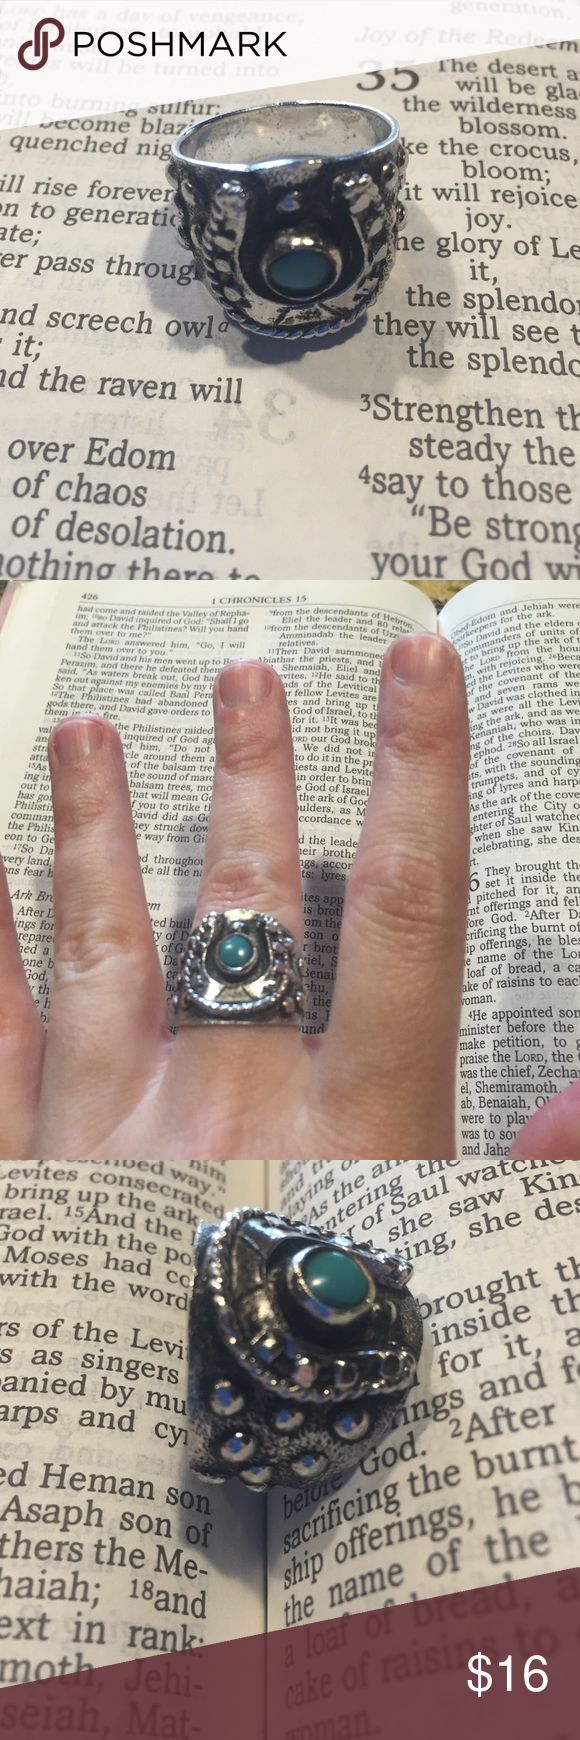 Pewter horseshoe ring with turquoise stone 🔹BOGO 50% OFF OF EQUAL OR LESSER VALUE ITEM OR BUY 3+ JEWELRY ITEMS FOR $5/PIECE🔹size 8, faux turquoise, antiquing throughout ring. Jewelry Rings